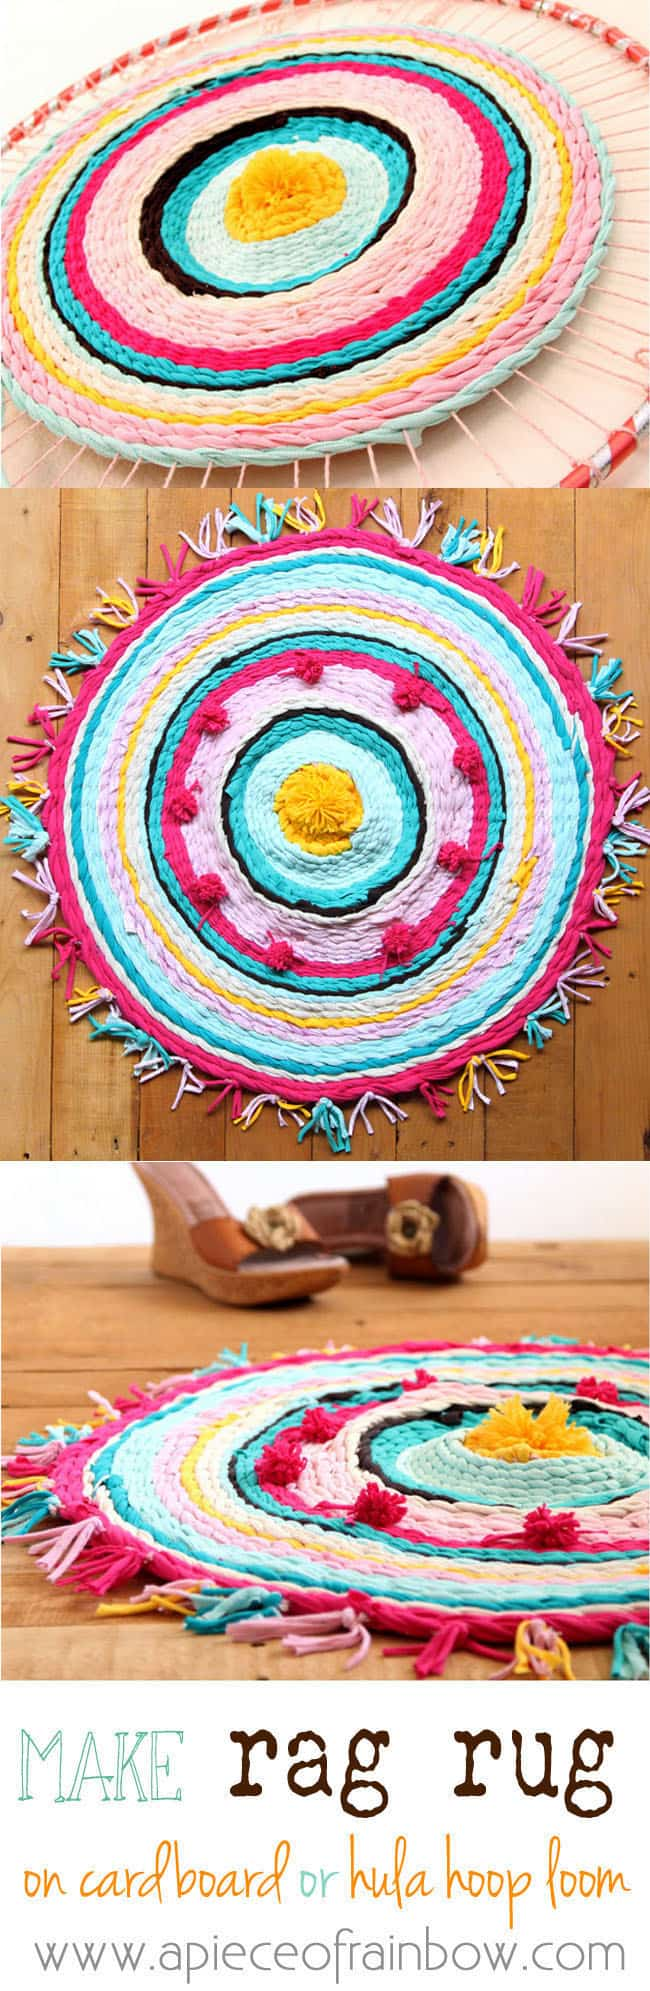 Really fun and detailed tutorial on how to make rag rug from old t-shirts, and how to weave beautiful rugs on a cardboard loom or hula hoop loom!